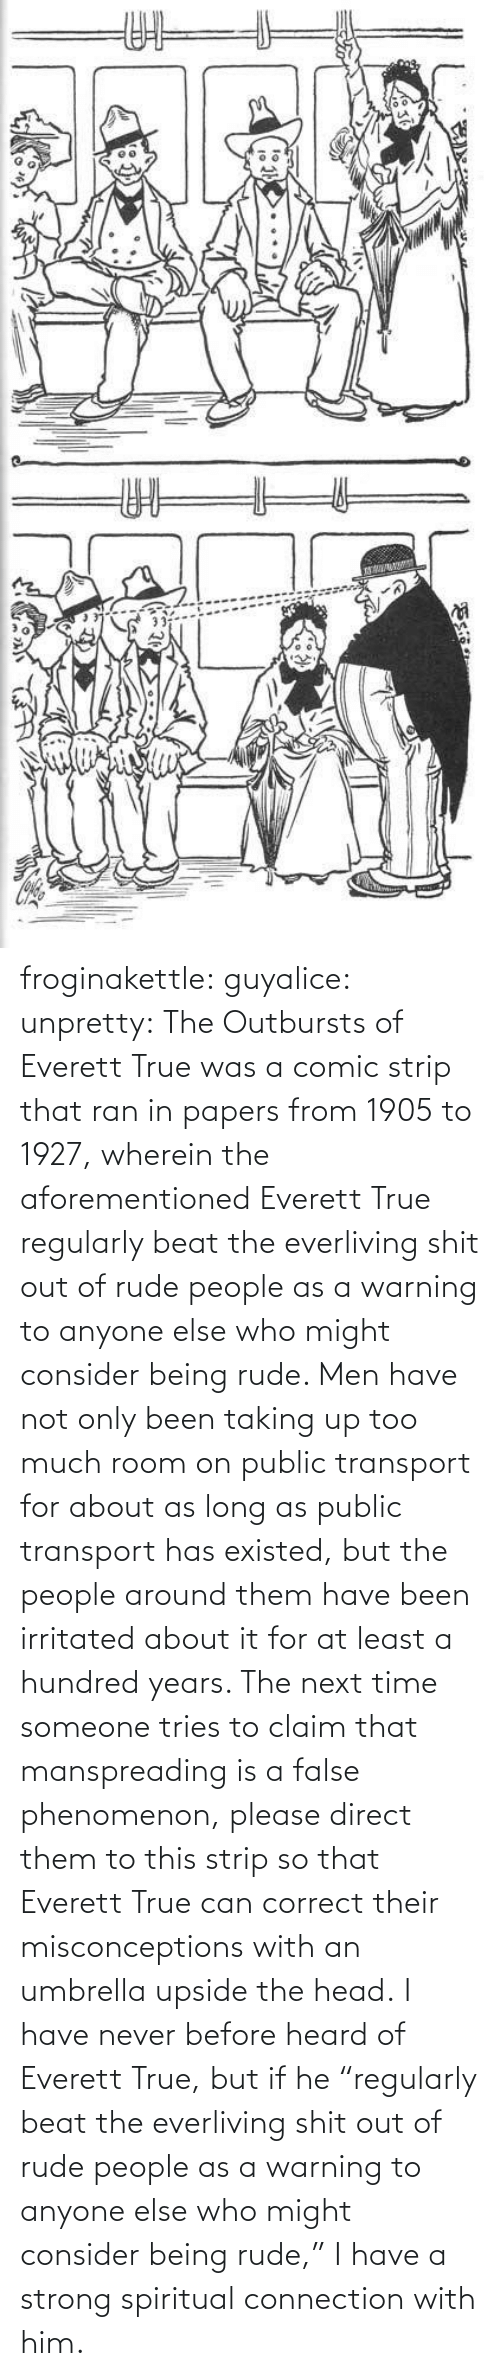 "Next Time: ఇ  క froginakettle:  guyalice:  unpretty:  The Outbursts of Everett True was a comic strip that ran in papers from 1905 to 1927, wherein the aforementioned Everett True regularly beat the everliving shit out of rude people as a warning to anyone else who might consider being rude. Men have not only been taking up too much room on public transport for about as long as public transport has existed, but the people around them have been irritated about it for at least a hundred years. The next time someone tries to claim that manspreading is a false phenomenon, please direct them to this strip so that Everett True can correct their misconceptions with an umbrella upside the head.  I have never before heard of Everett True, but if he ""regularly beat the everliving shit out of rude people as a warning to anyone else who might consider being rude,"" I have a strong spiritual connection with him."